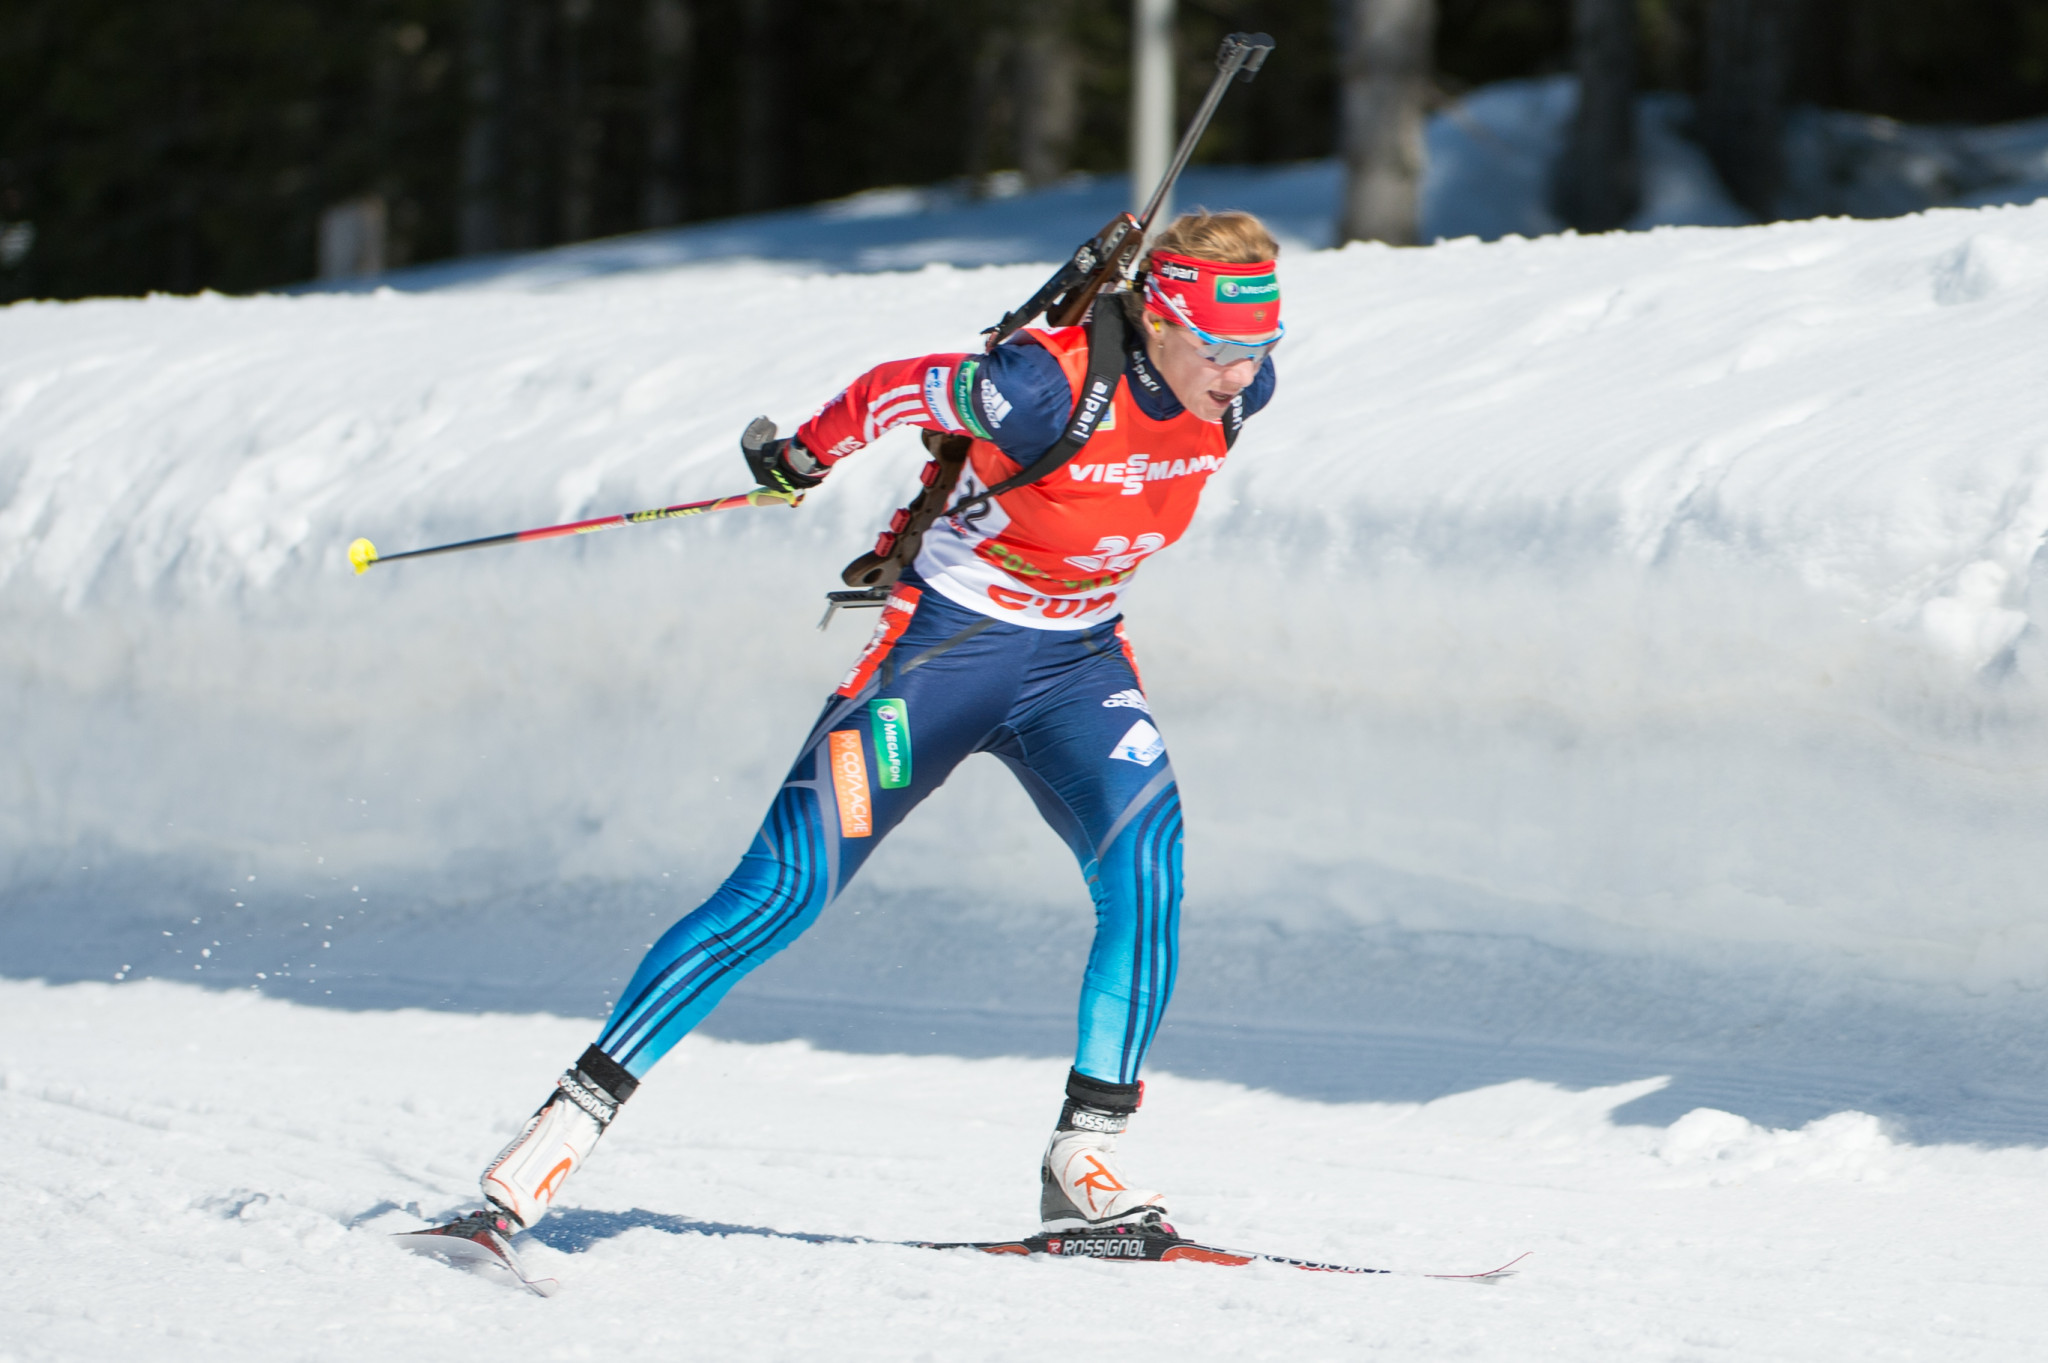 Former biathlon coach claims Zaitseva's individual results suggest she was not doping at Sochi 2014